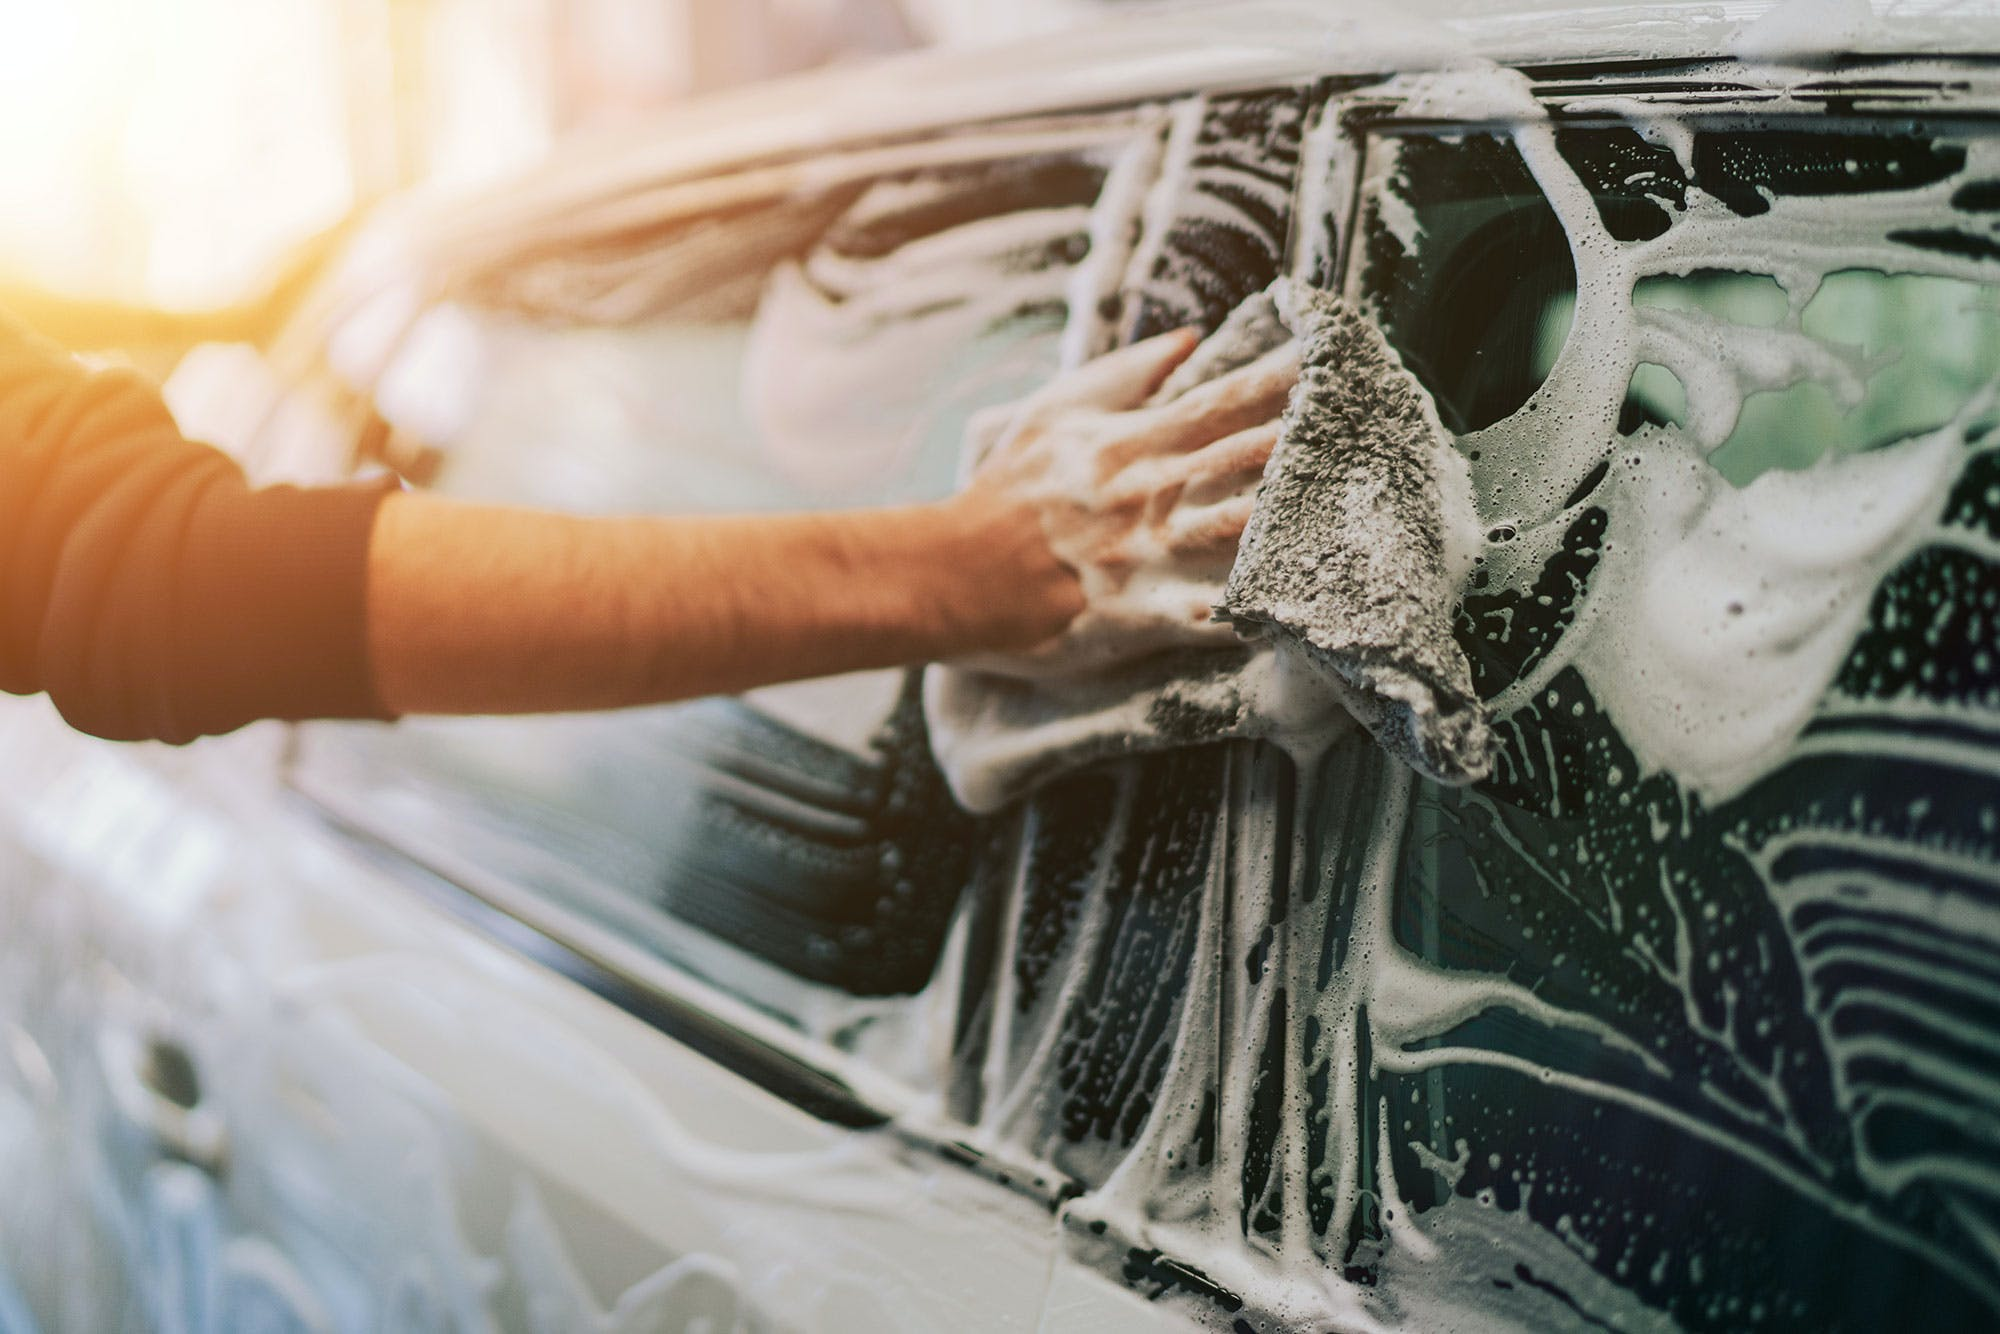 Top tips for cleaning your car